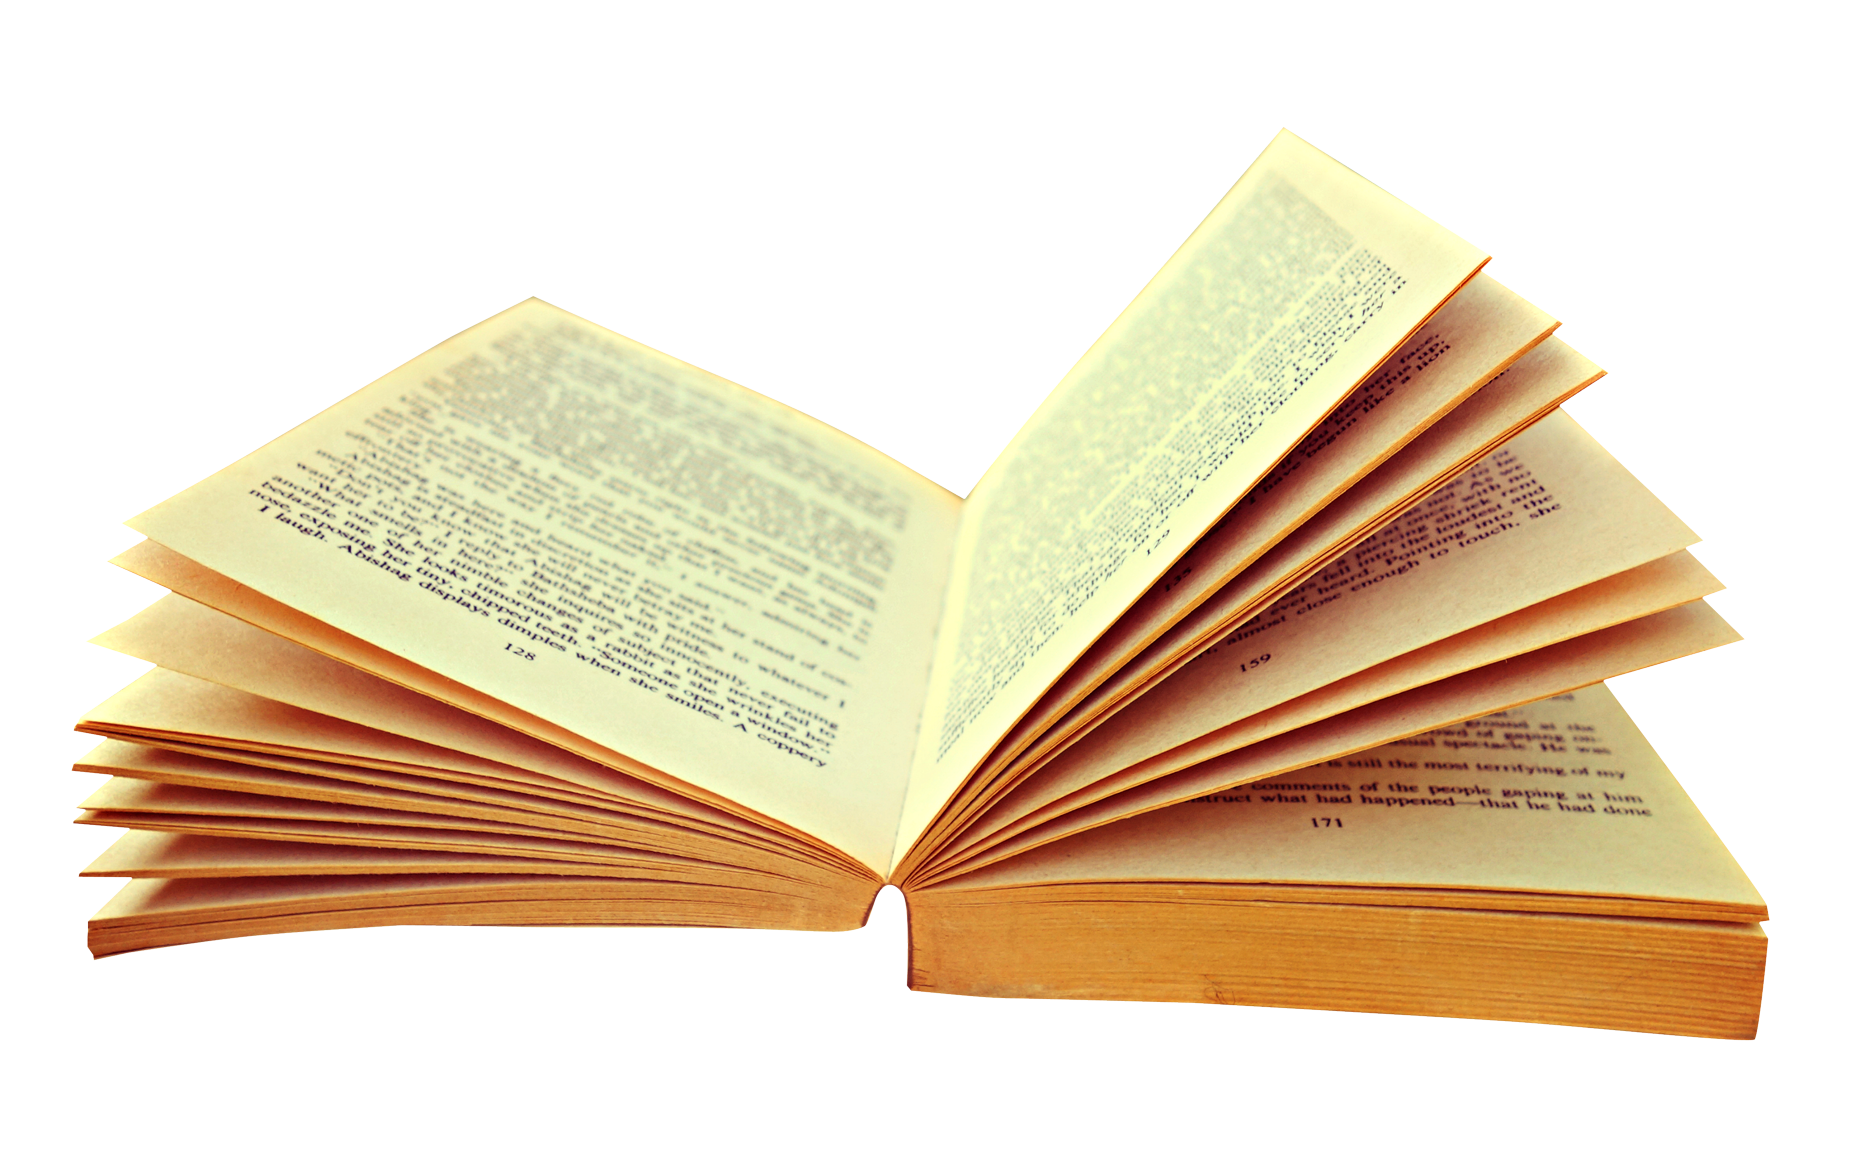 Opened Book PNG Image